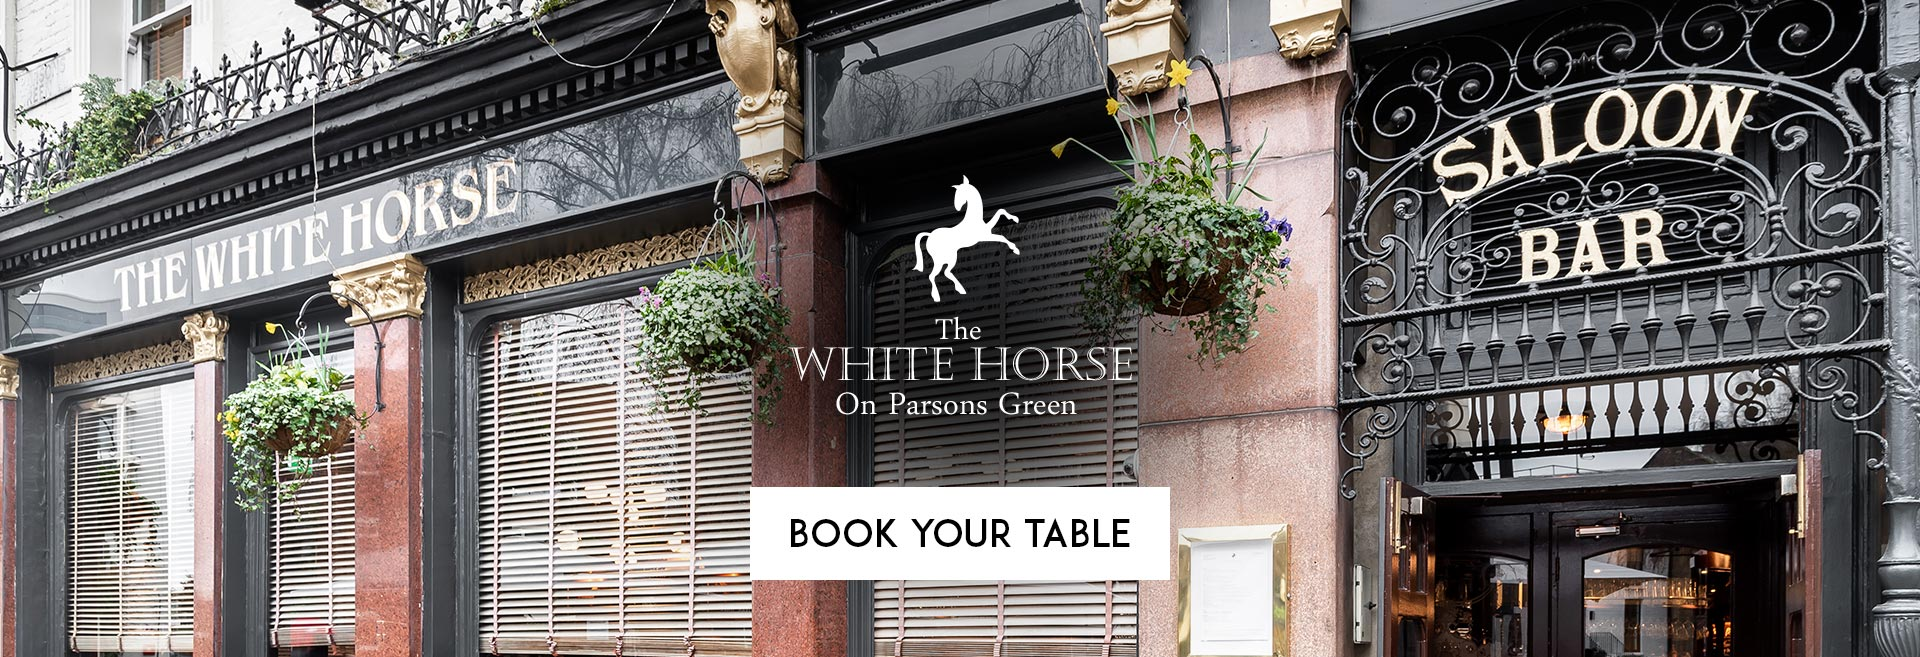 Book Your Table The White Horse